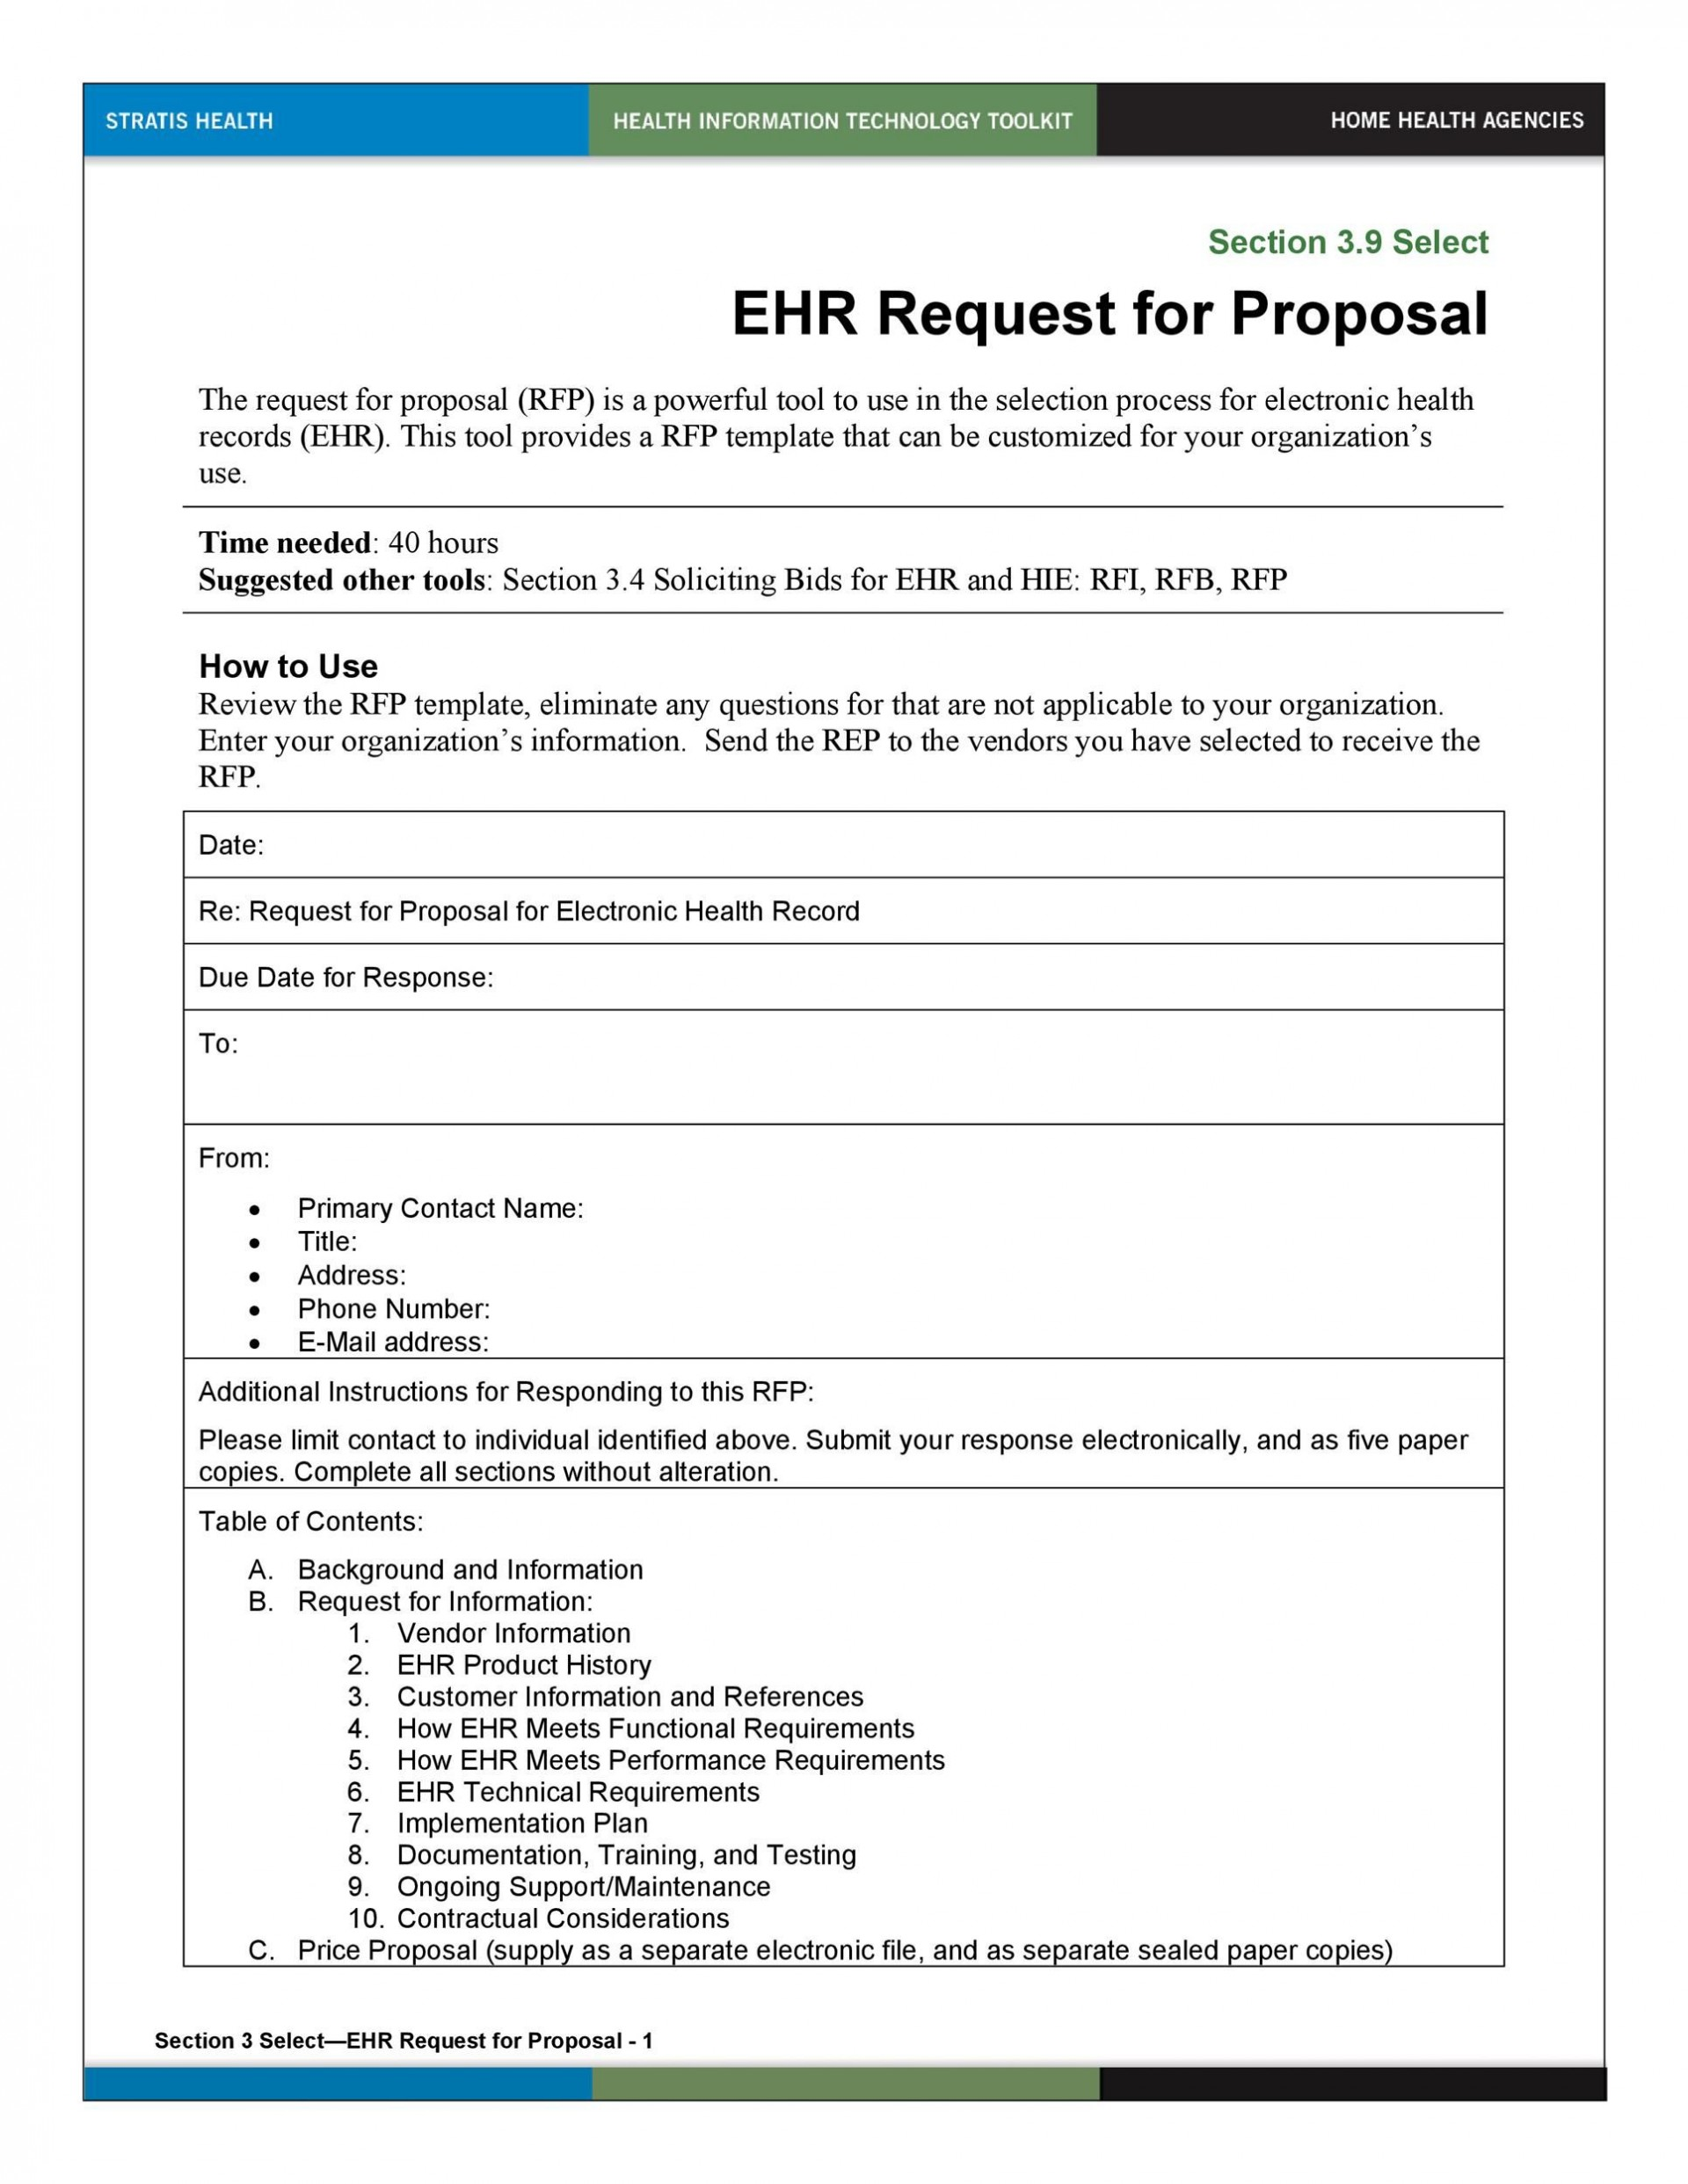 002 Impressive Request For Proposal Response Word Template Concept 1920